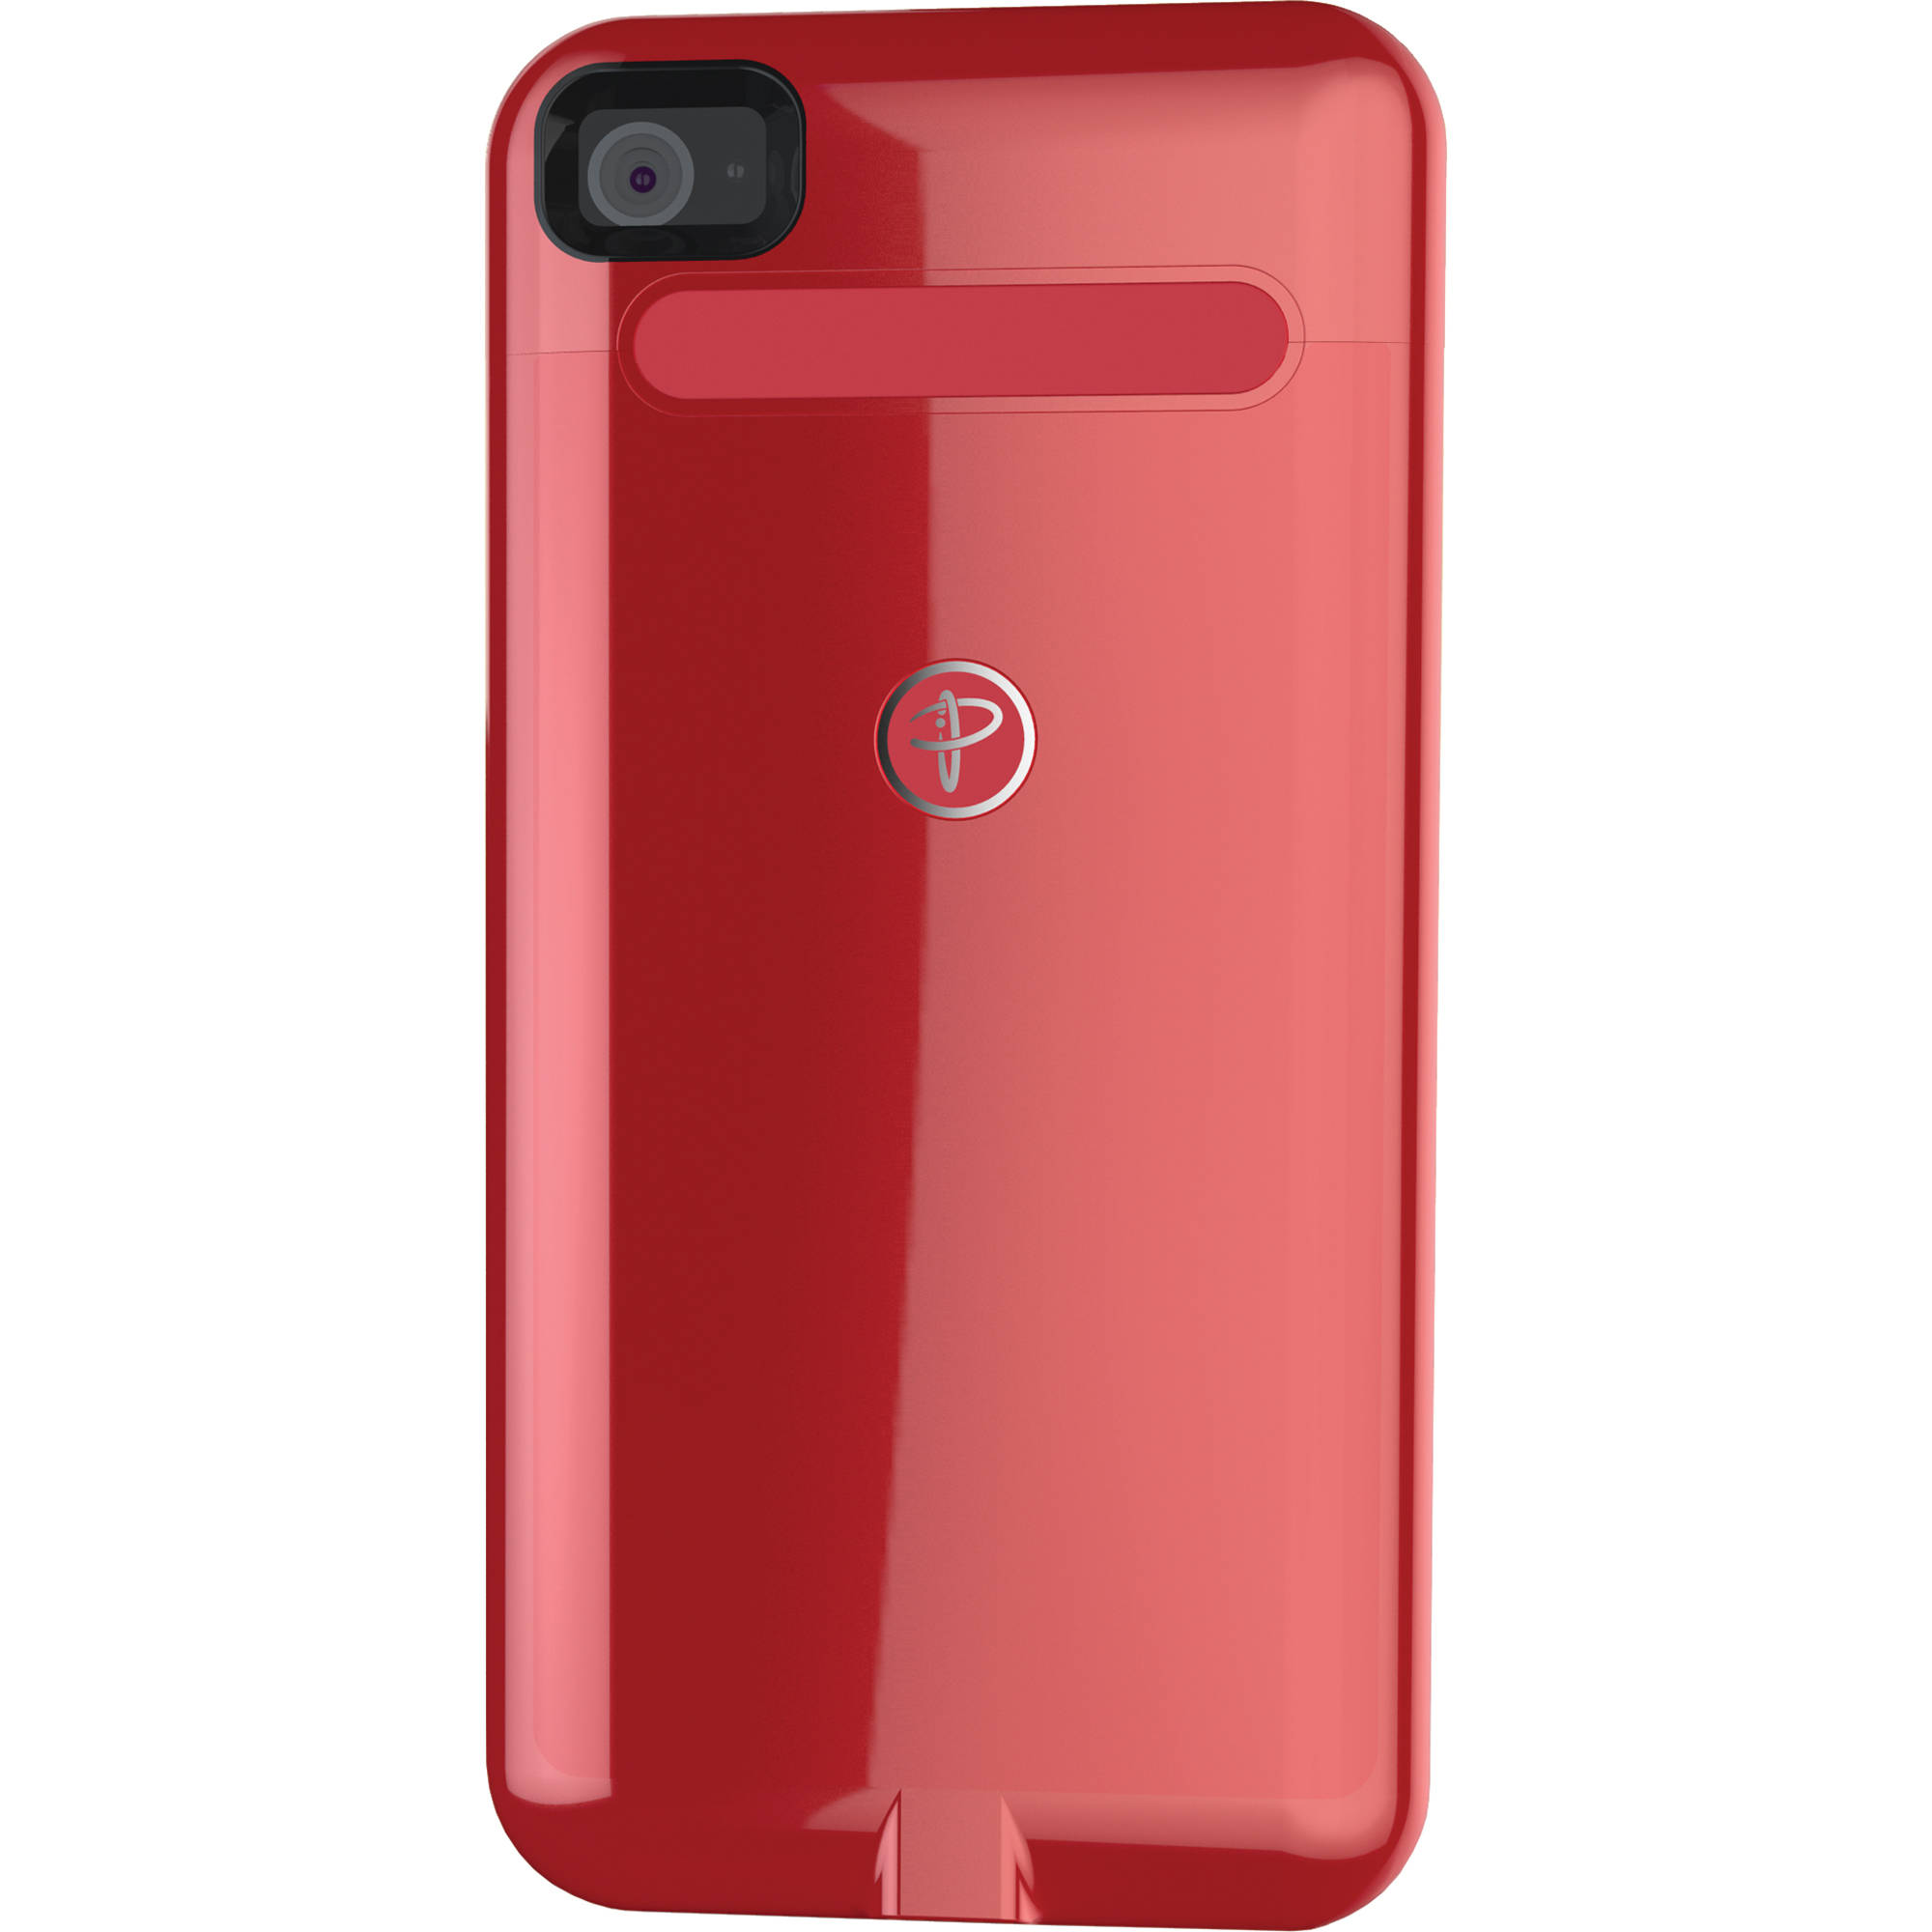 buy online c22fa 89cd5 Duracell Powermat Wireless Case for iPhone 4/4S (Red) 84878893